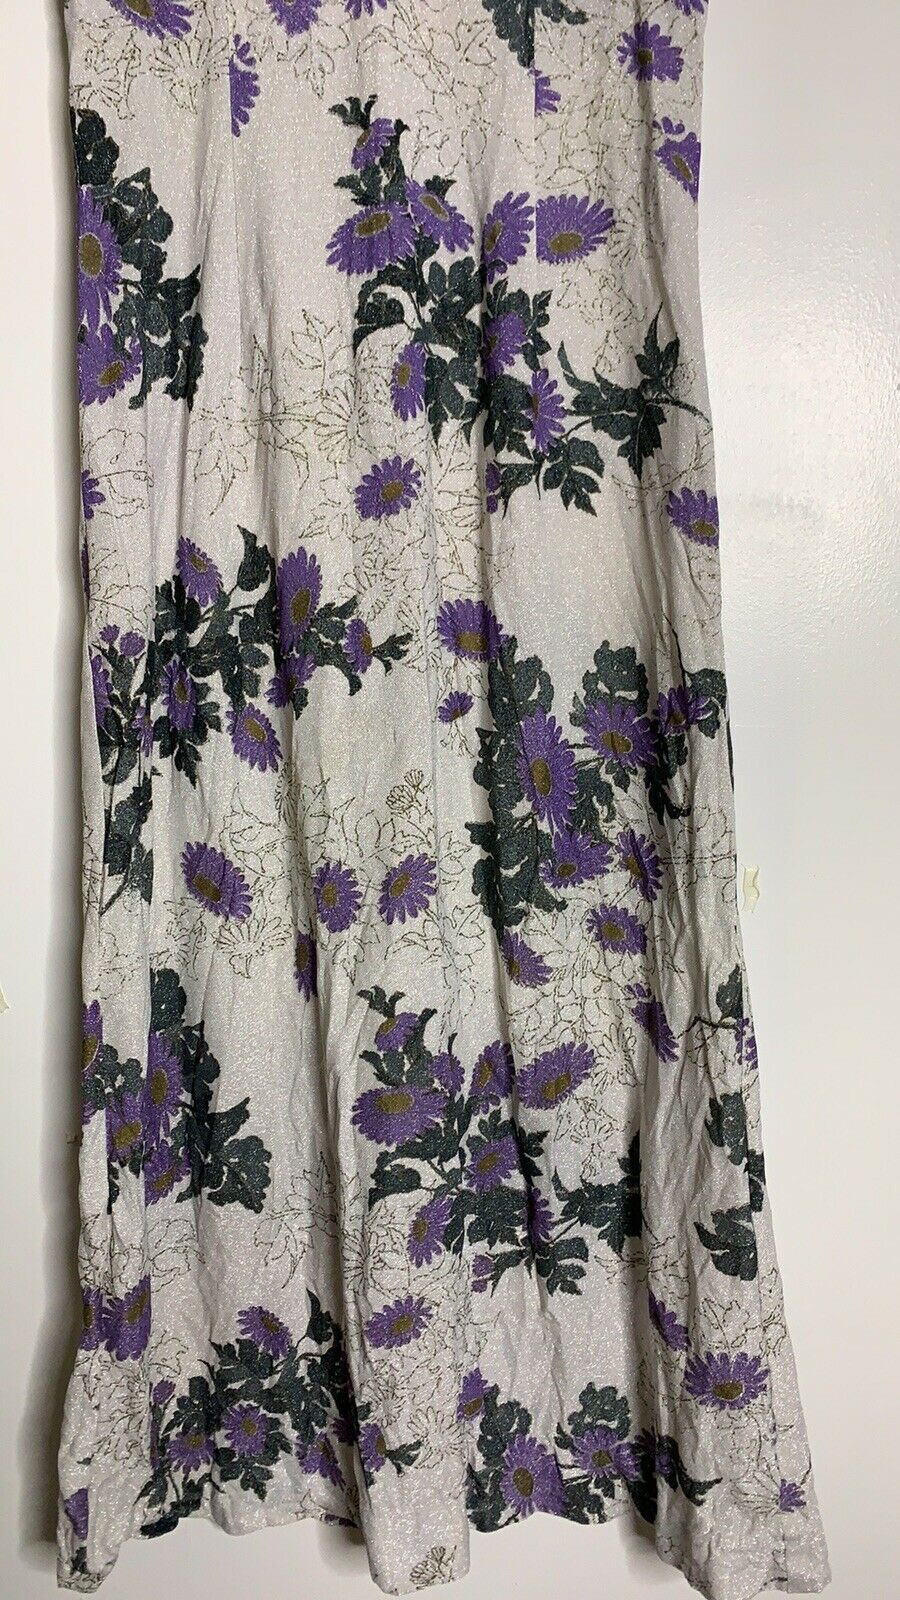 Vintage Alfred Shaheen Daisy Dress - image 5